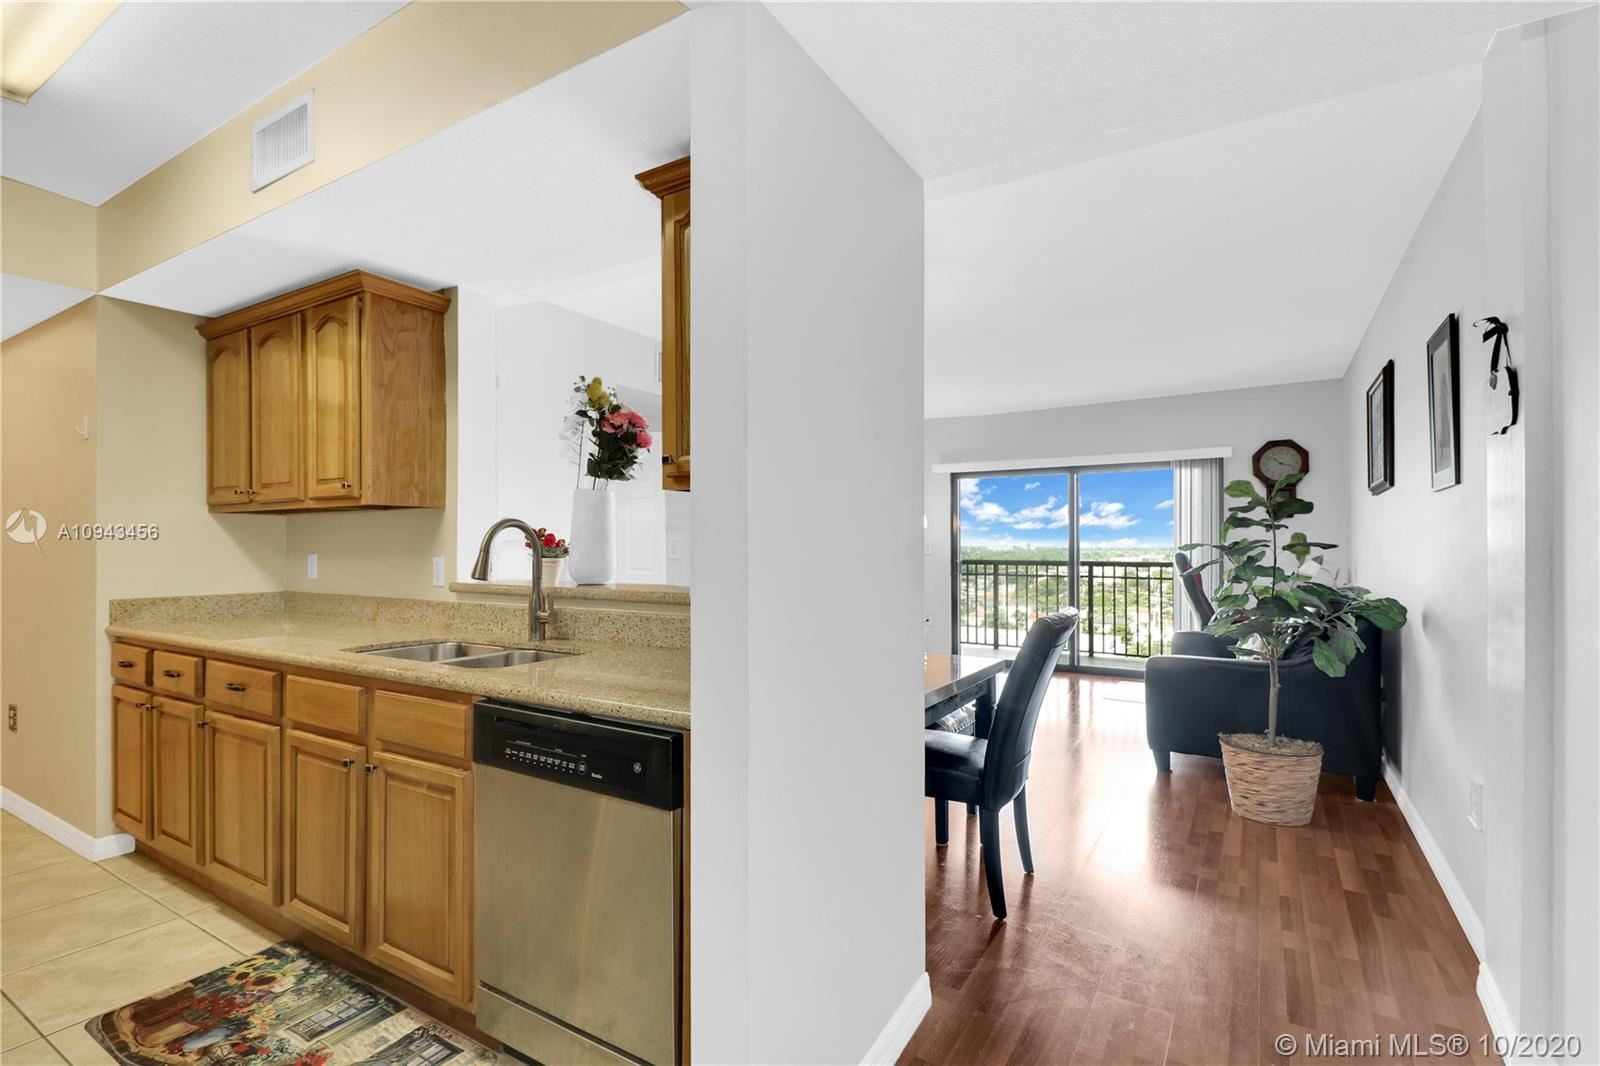 4242 NW 2nd St #1011, Miami, FL 33126 - #: A10943456